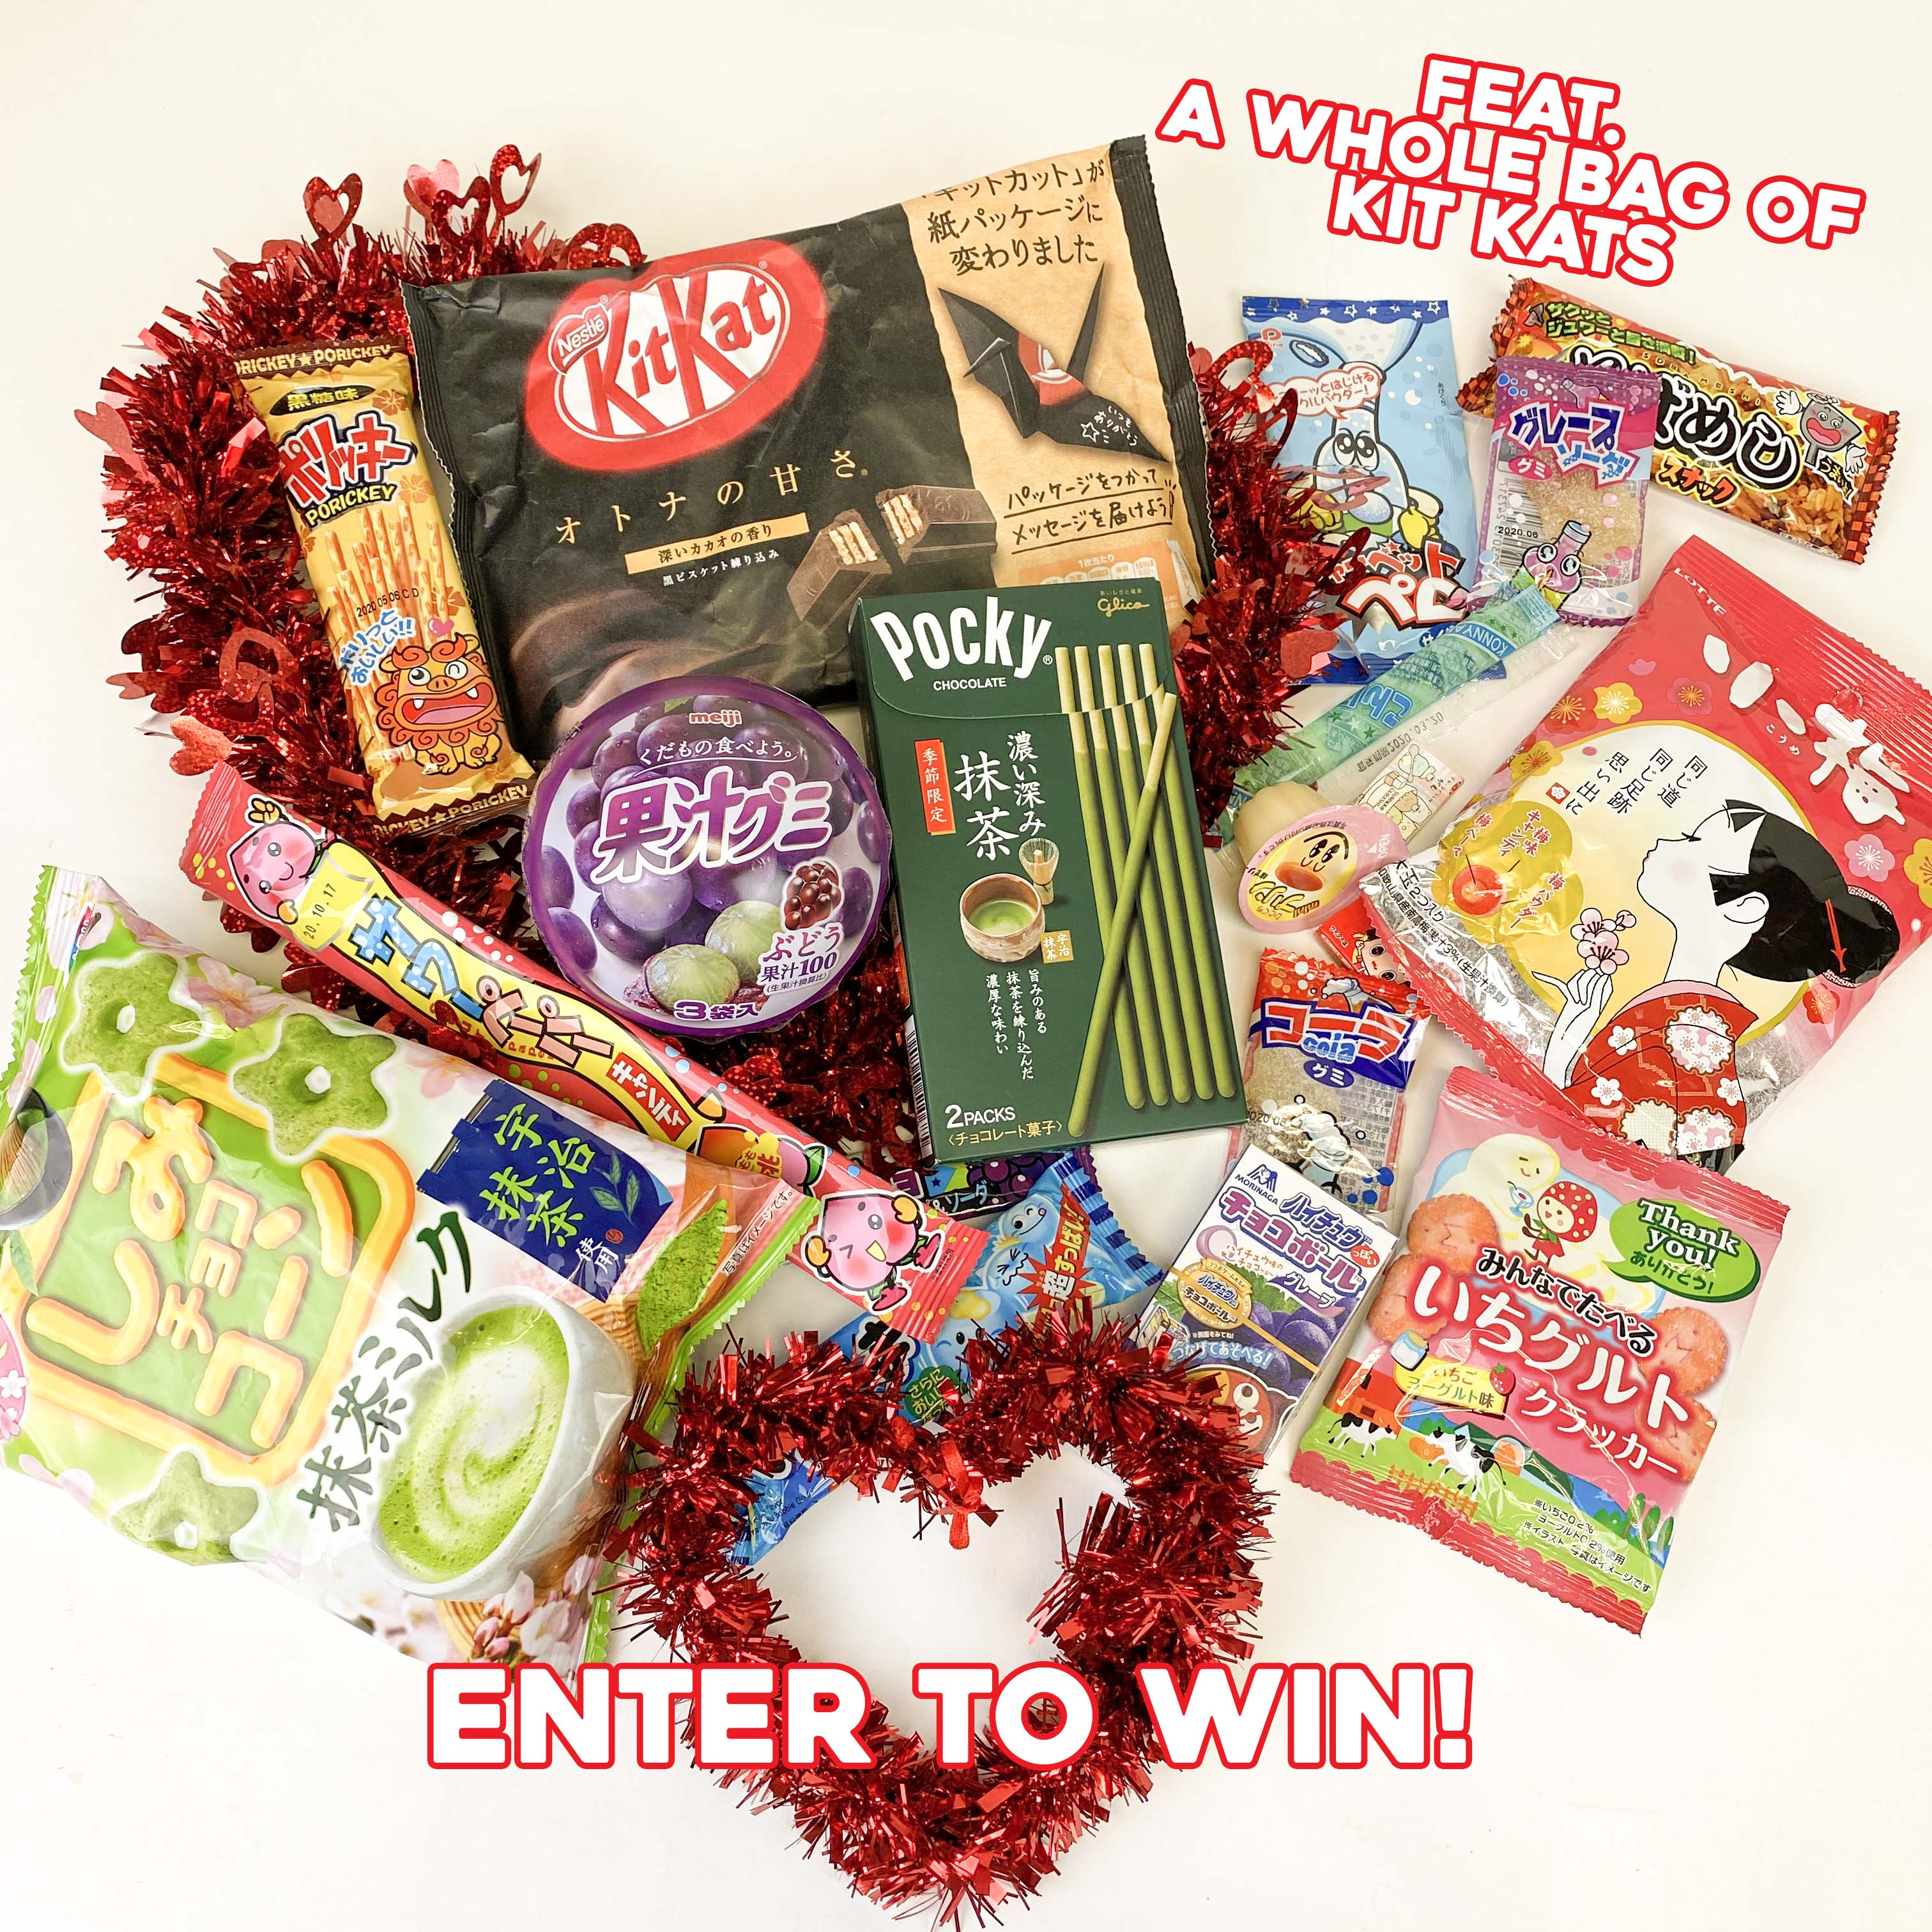 Japan Crate Valentine's Giveaway Ft. a Whole Bag of Kit Kats Giveaway Image